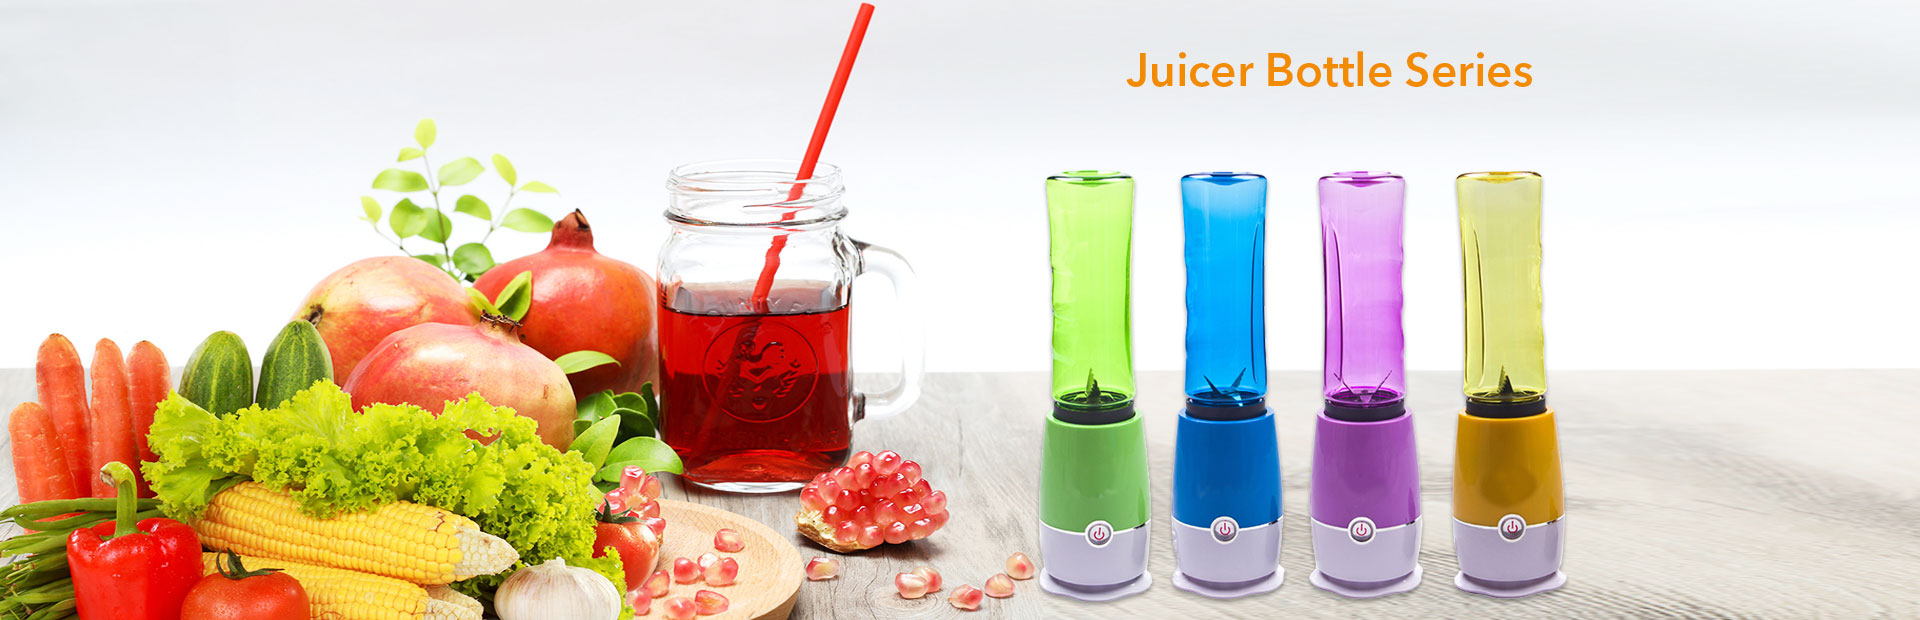 Travel Juicer Bottle Series